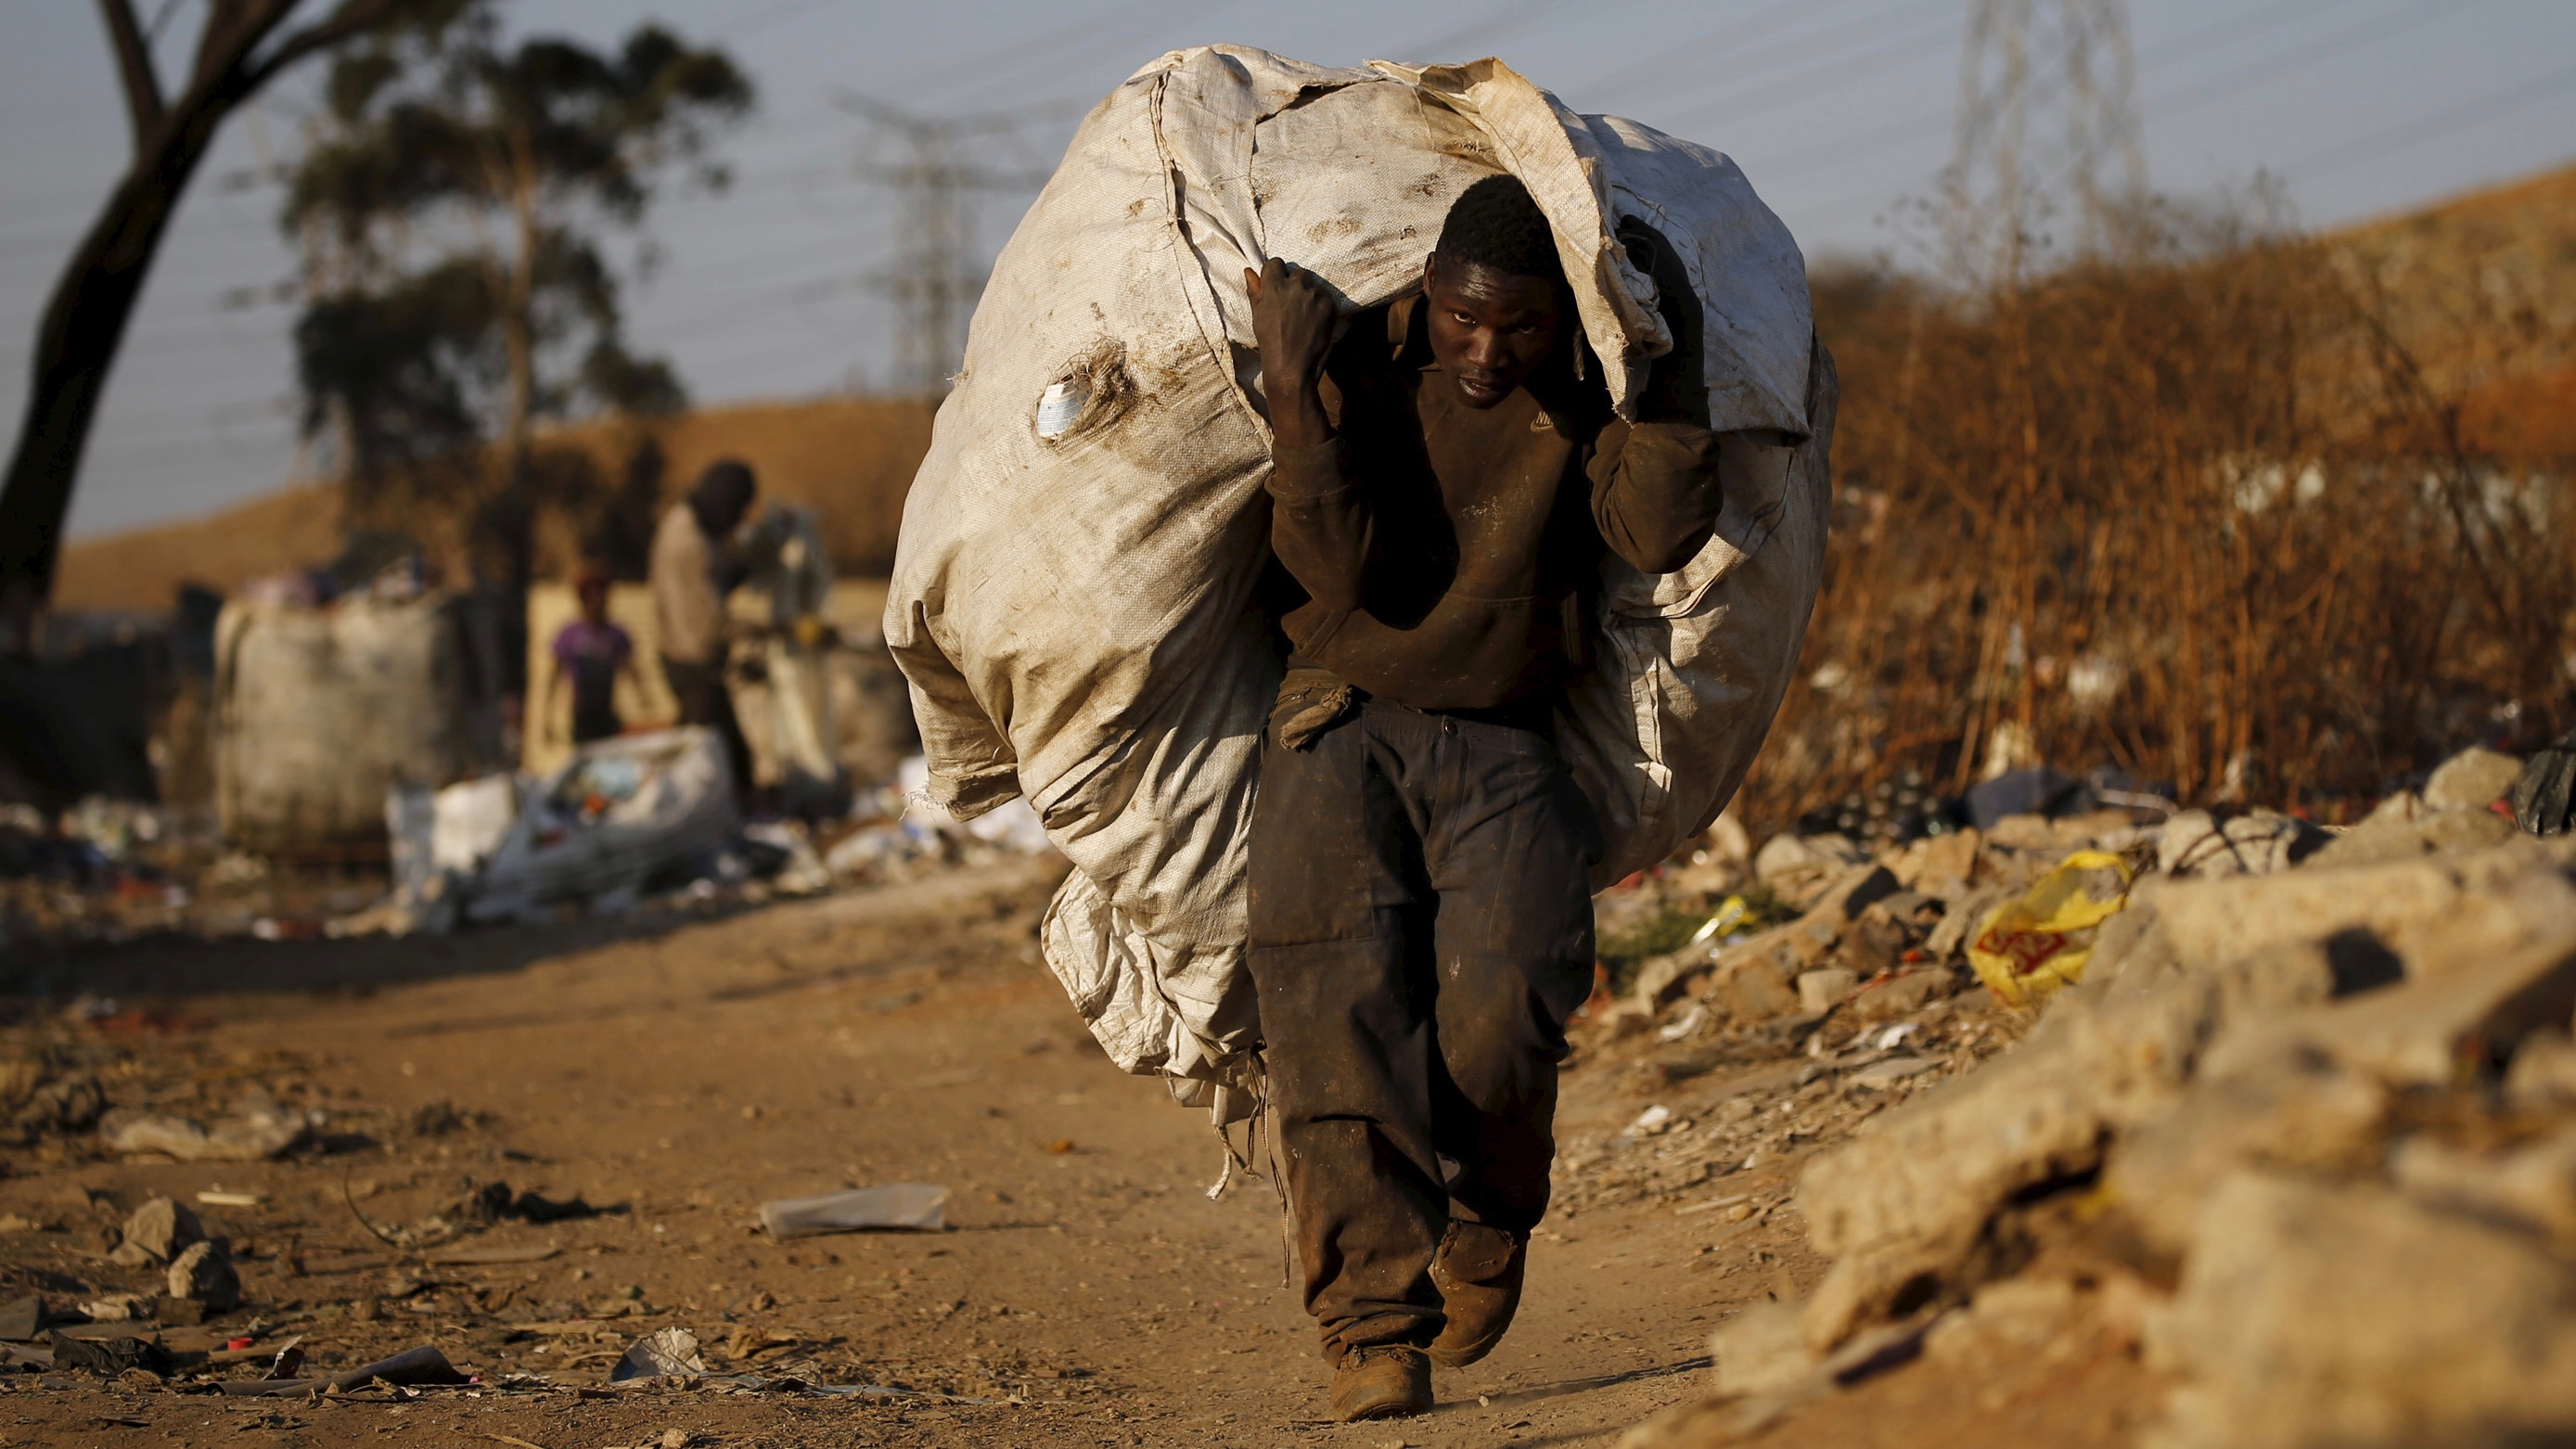 South Africa's unemployment is at a fourteen year high